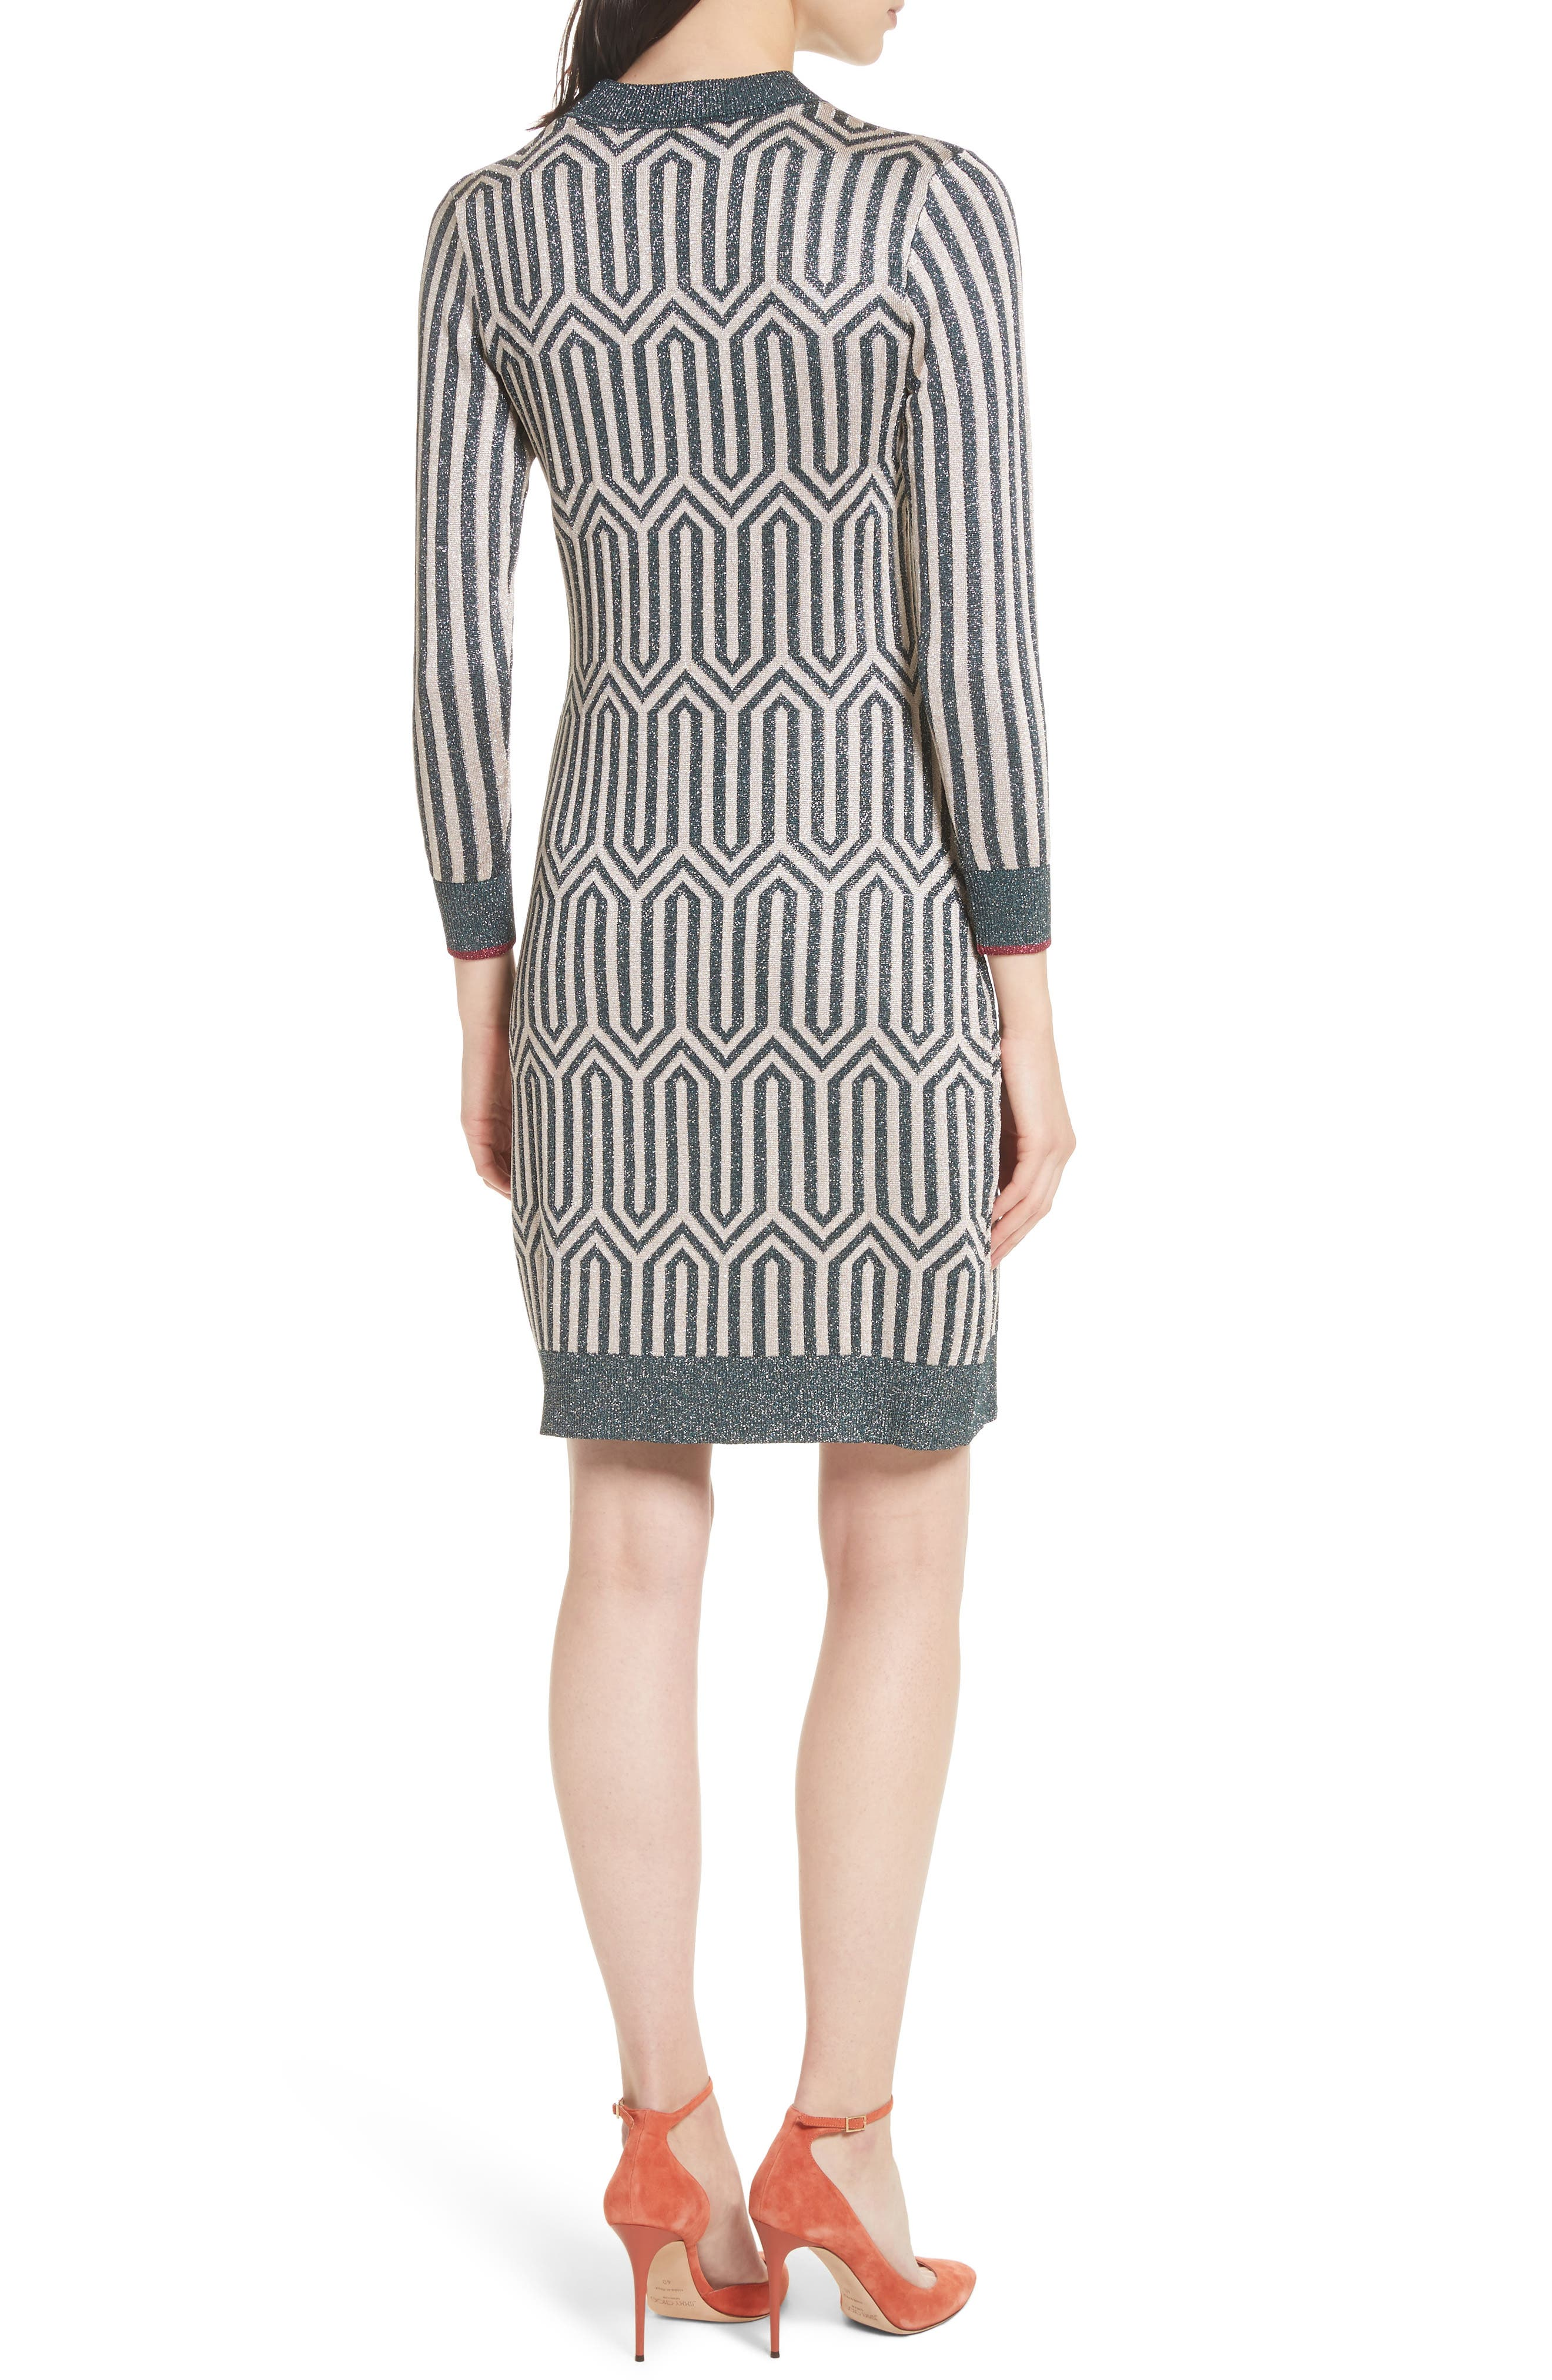 Metallic Knit Dress,                             Alternate thumbnail 2, color,                             440